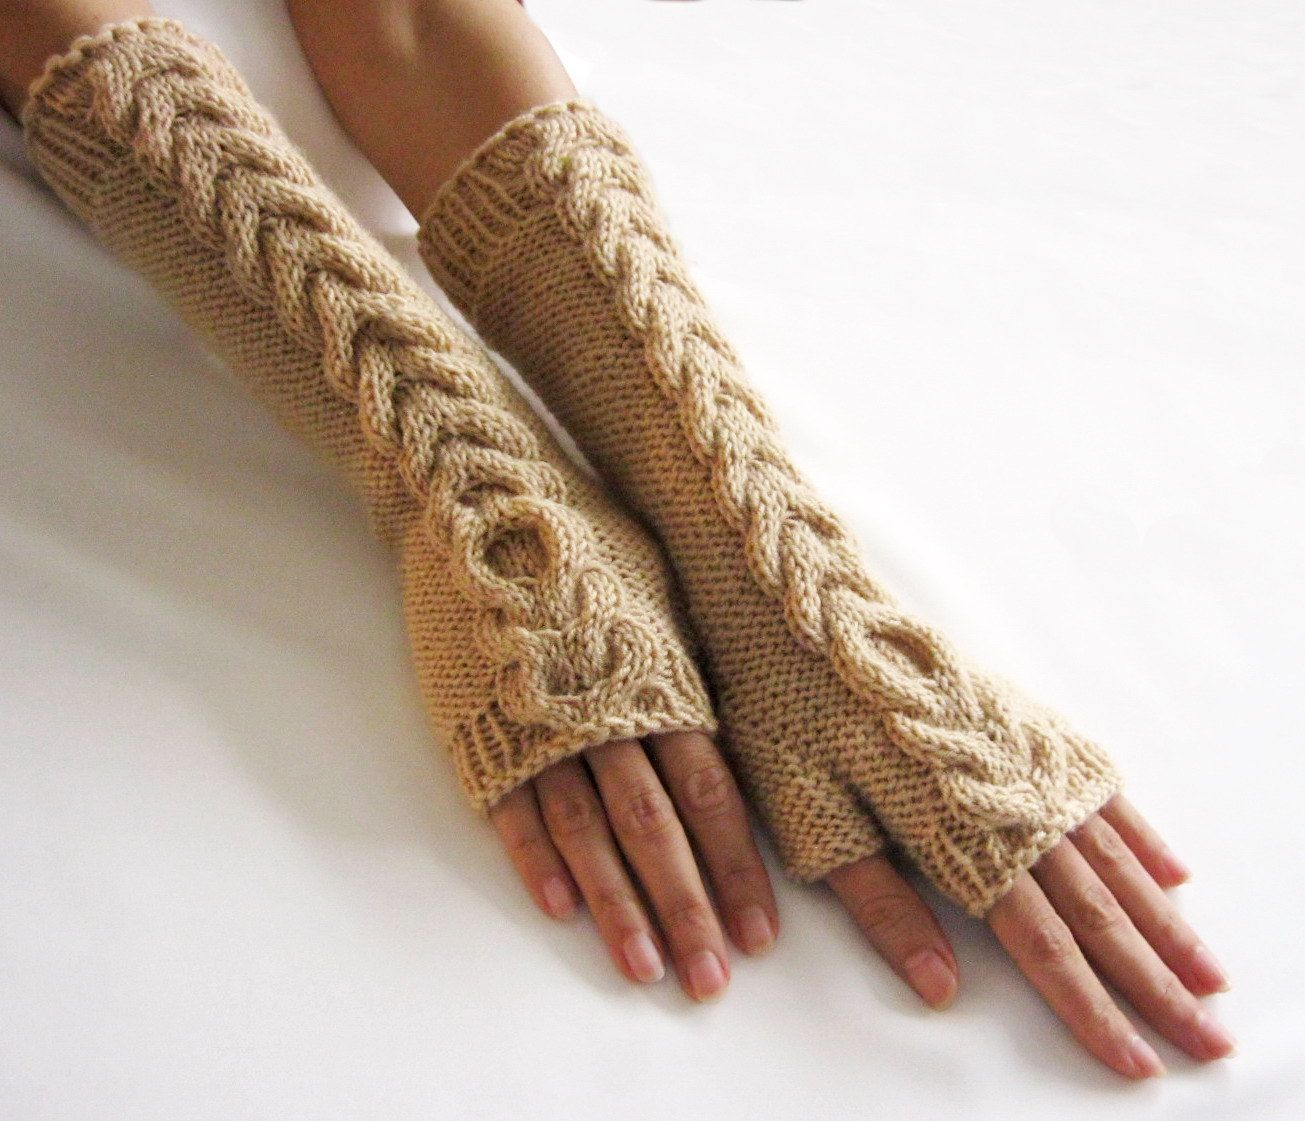 BEIGE LONG Fingerless Gloves, Merino Wool Mittens, Arm Warmers with ...